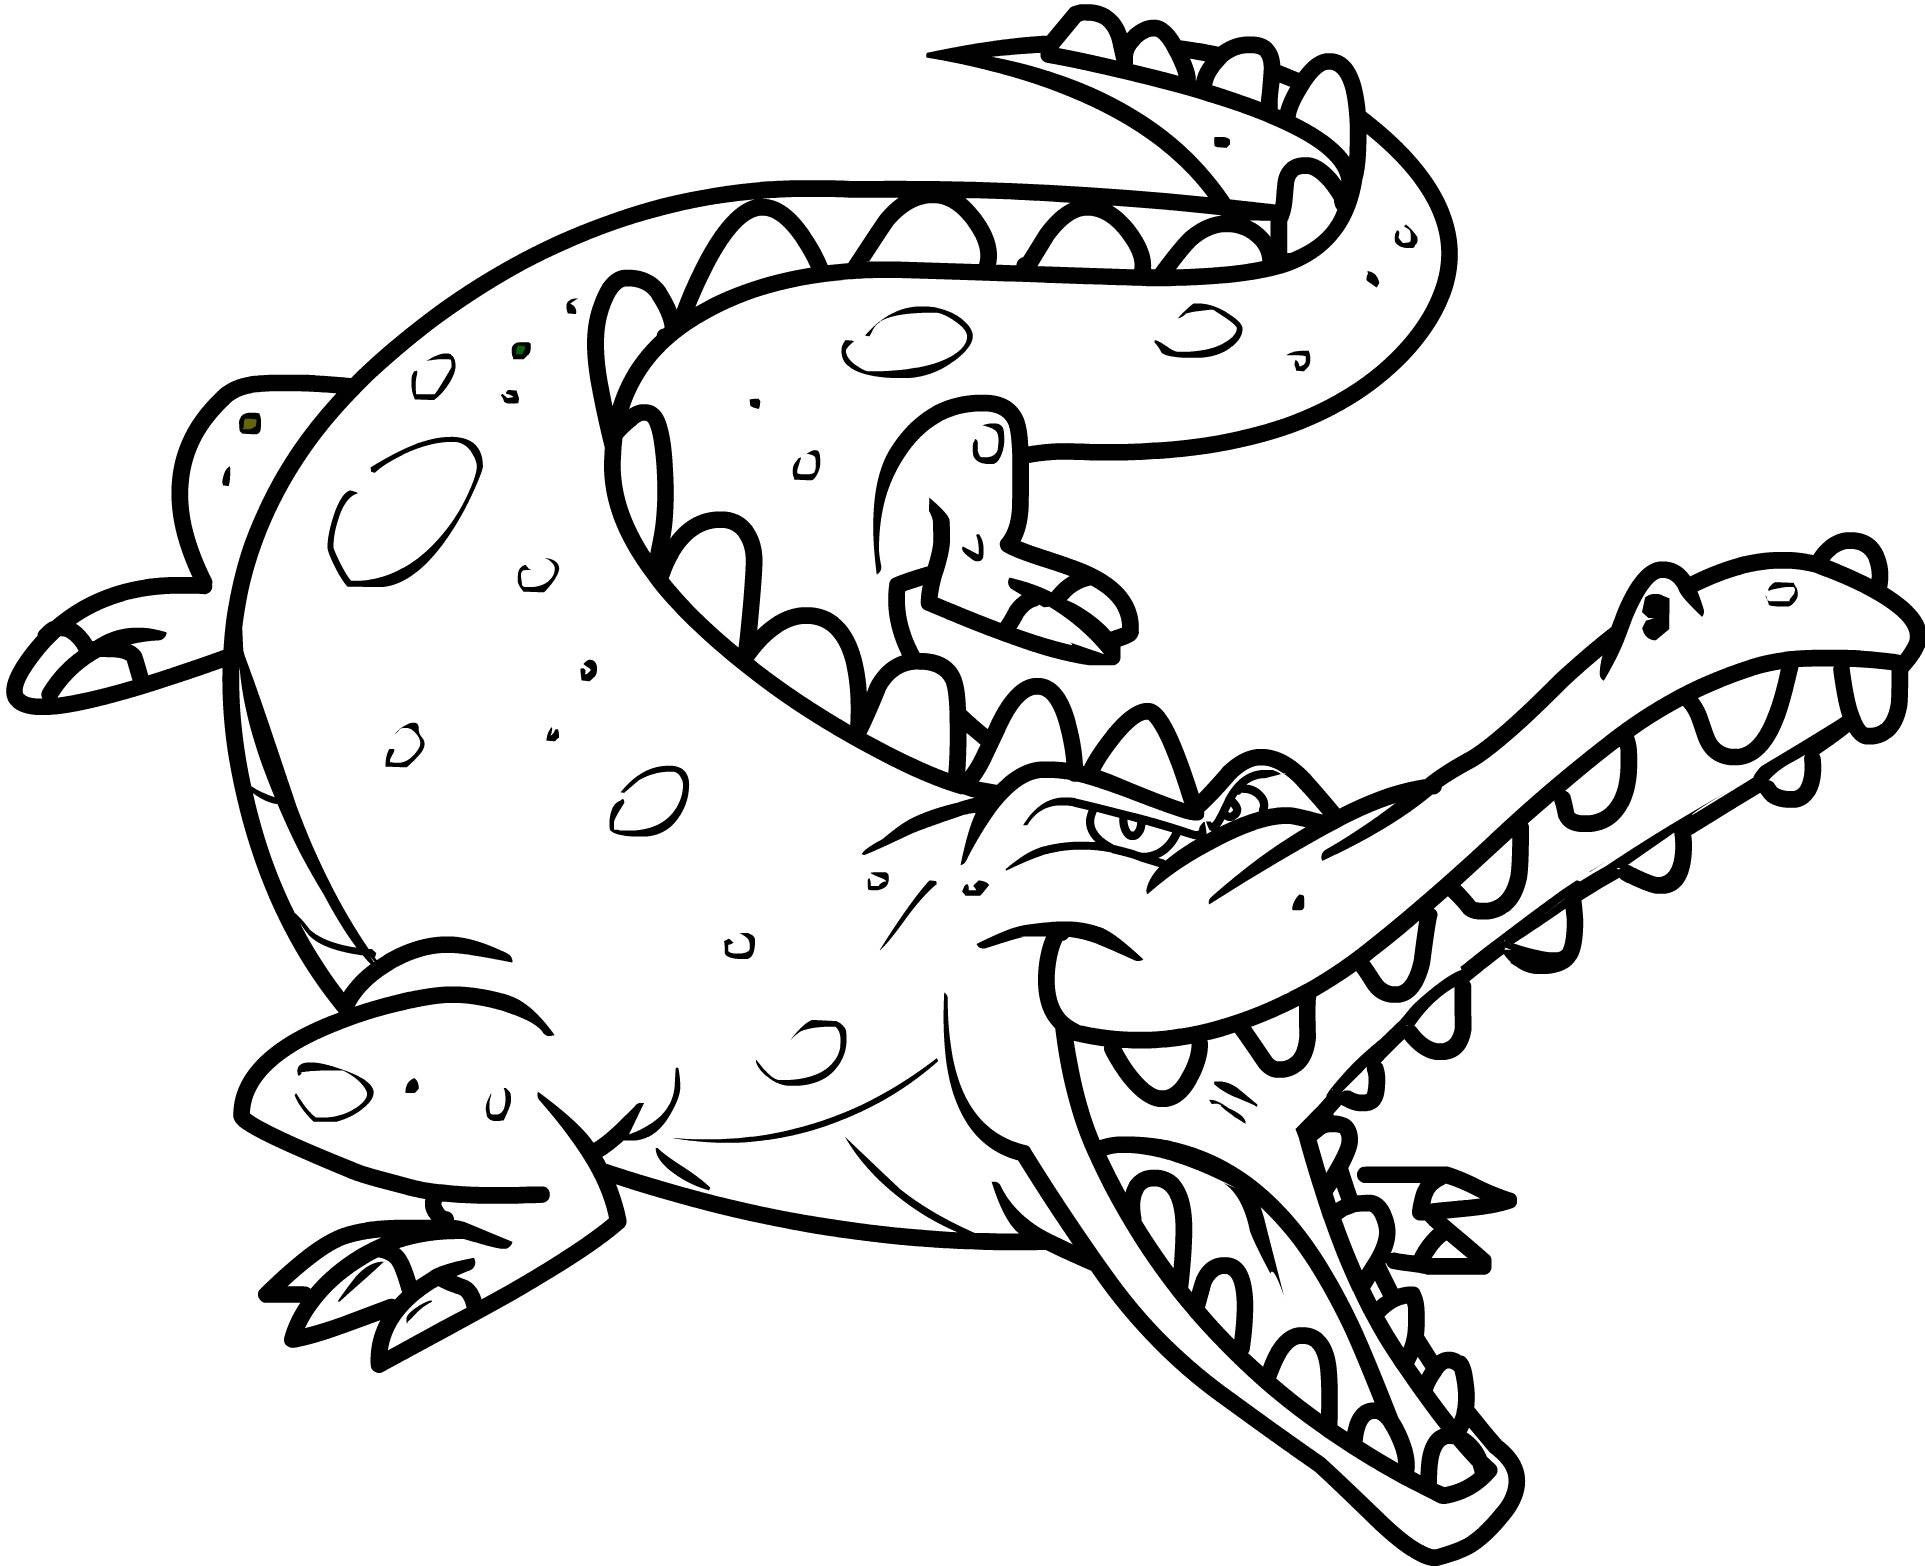 Free Printable Crocodile Coloring Pages For Kids Coloring Pages Turtle Coloring Pages Coloring Pages For Kids